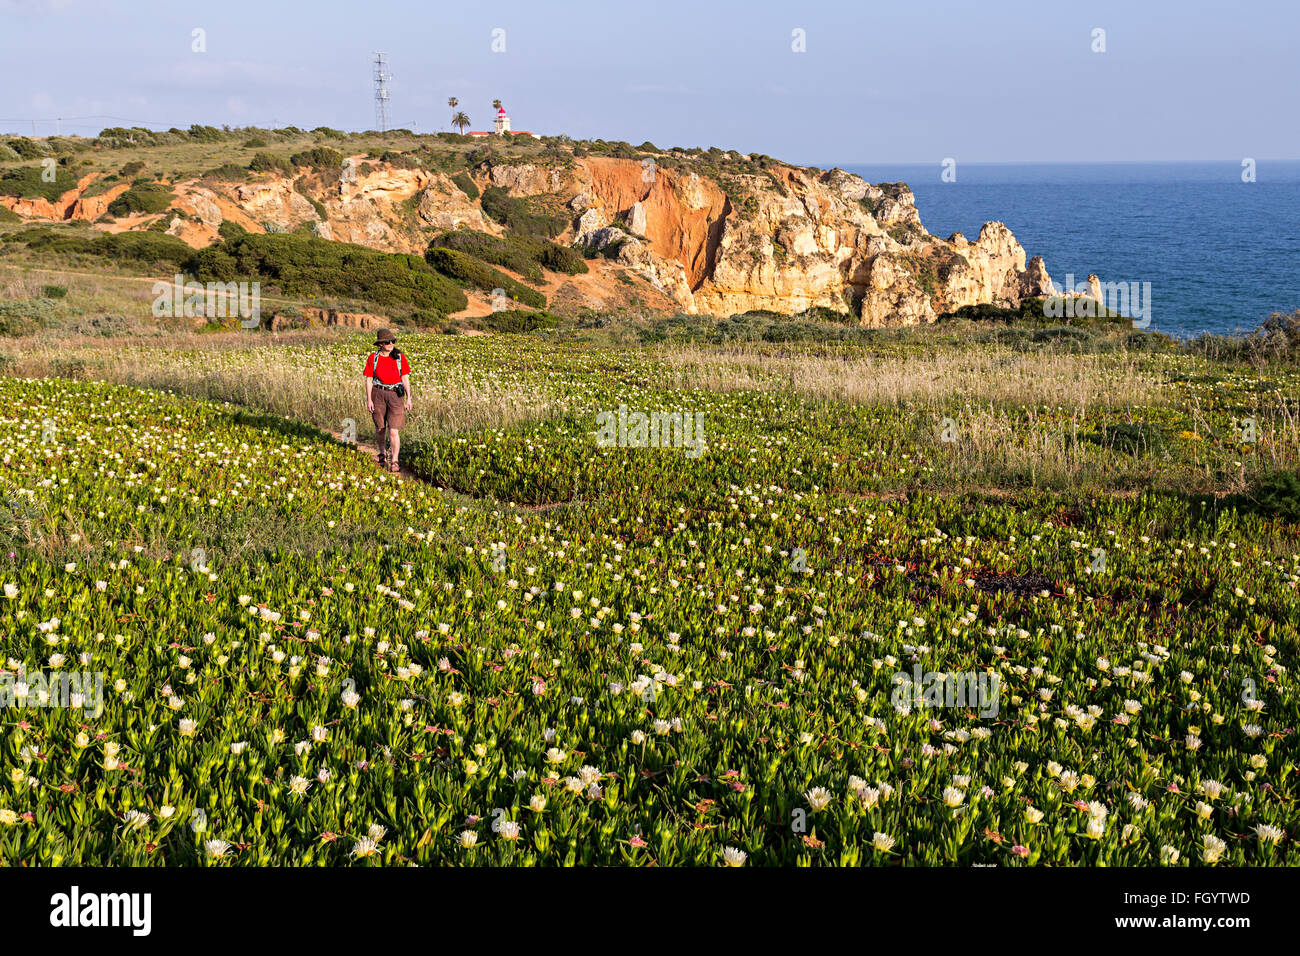 Woman walking through prickly pears in flower on coast path, Pont Piedade, Algarve, Portugal - Stock Image